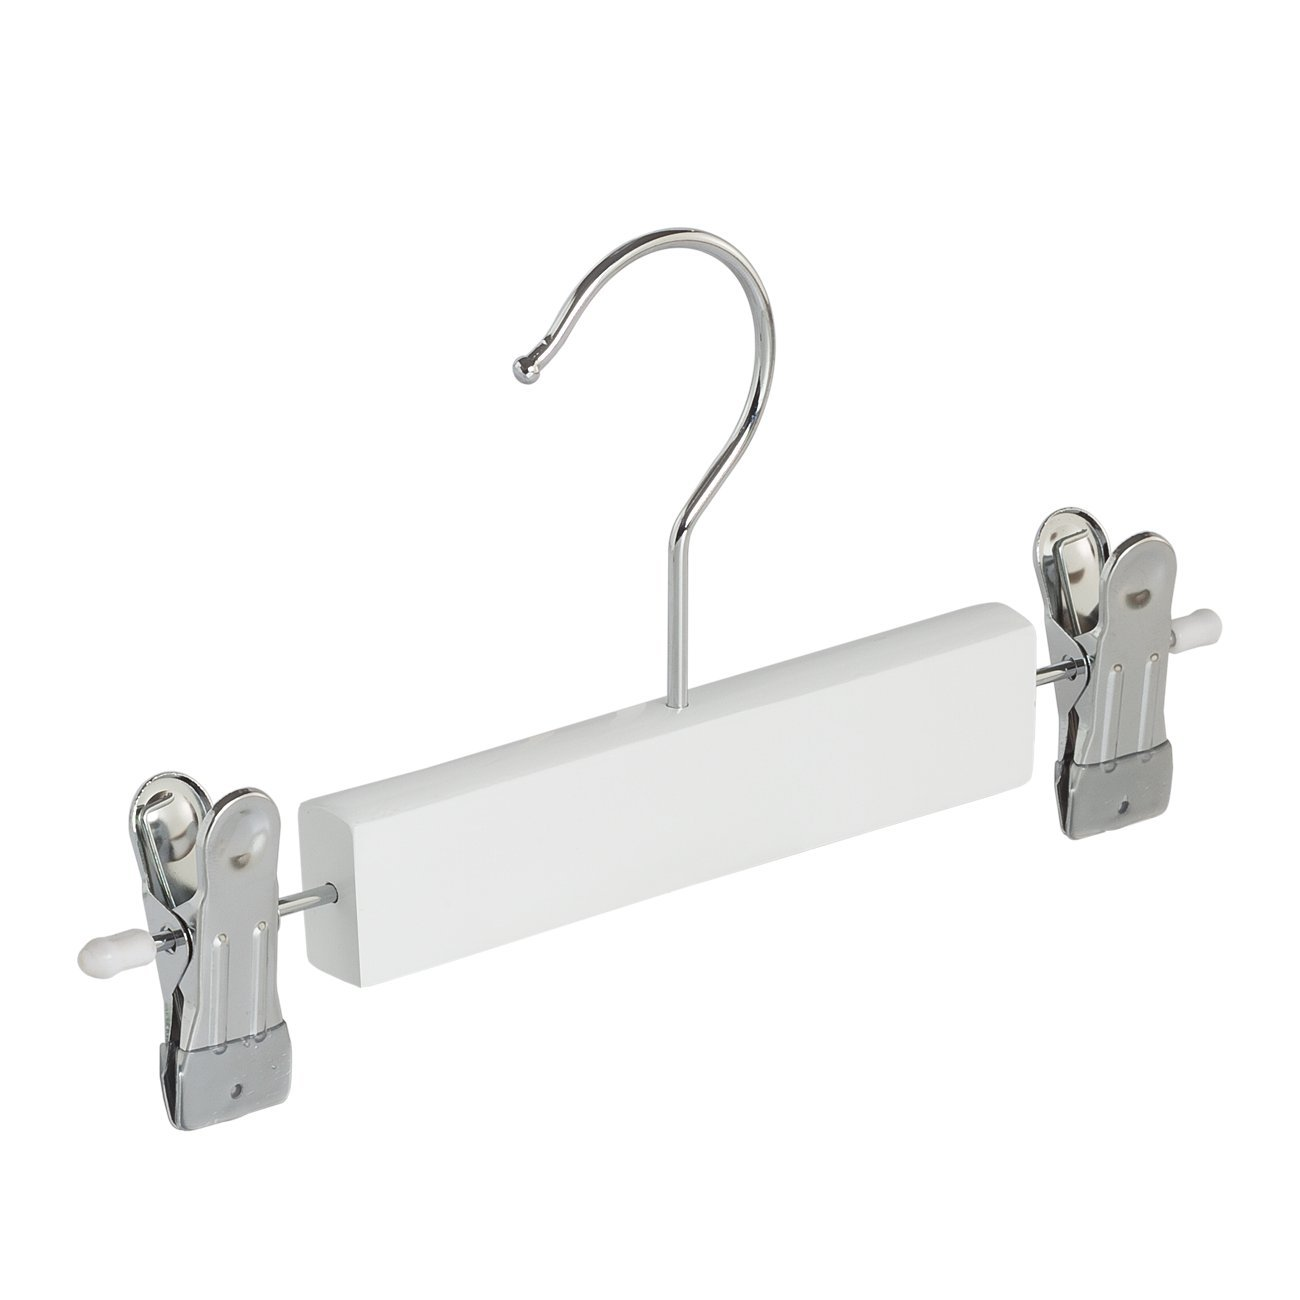 5 x Skirt / trouser hanger (child) white lacquered with adjustable chrome finish non-slip clips, 25 cm - THE CLOTHES HANGER GIANT